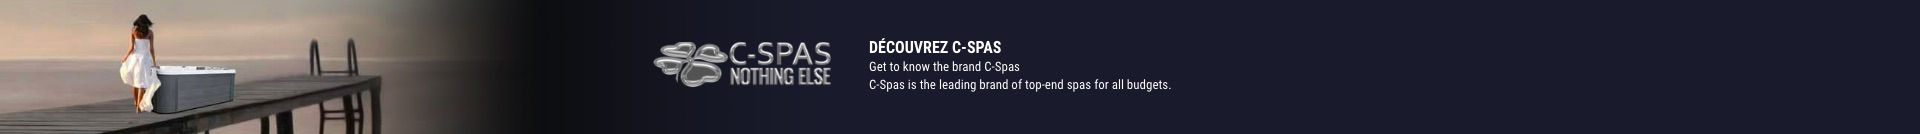 Get to know the brand C-Spas